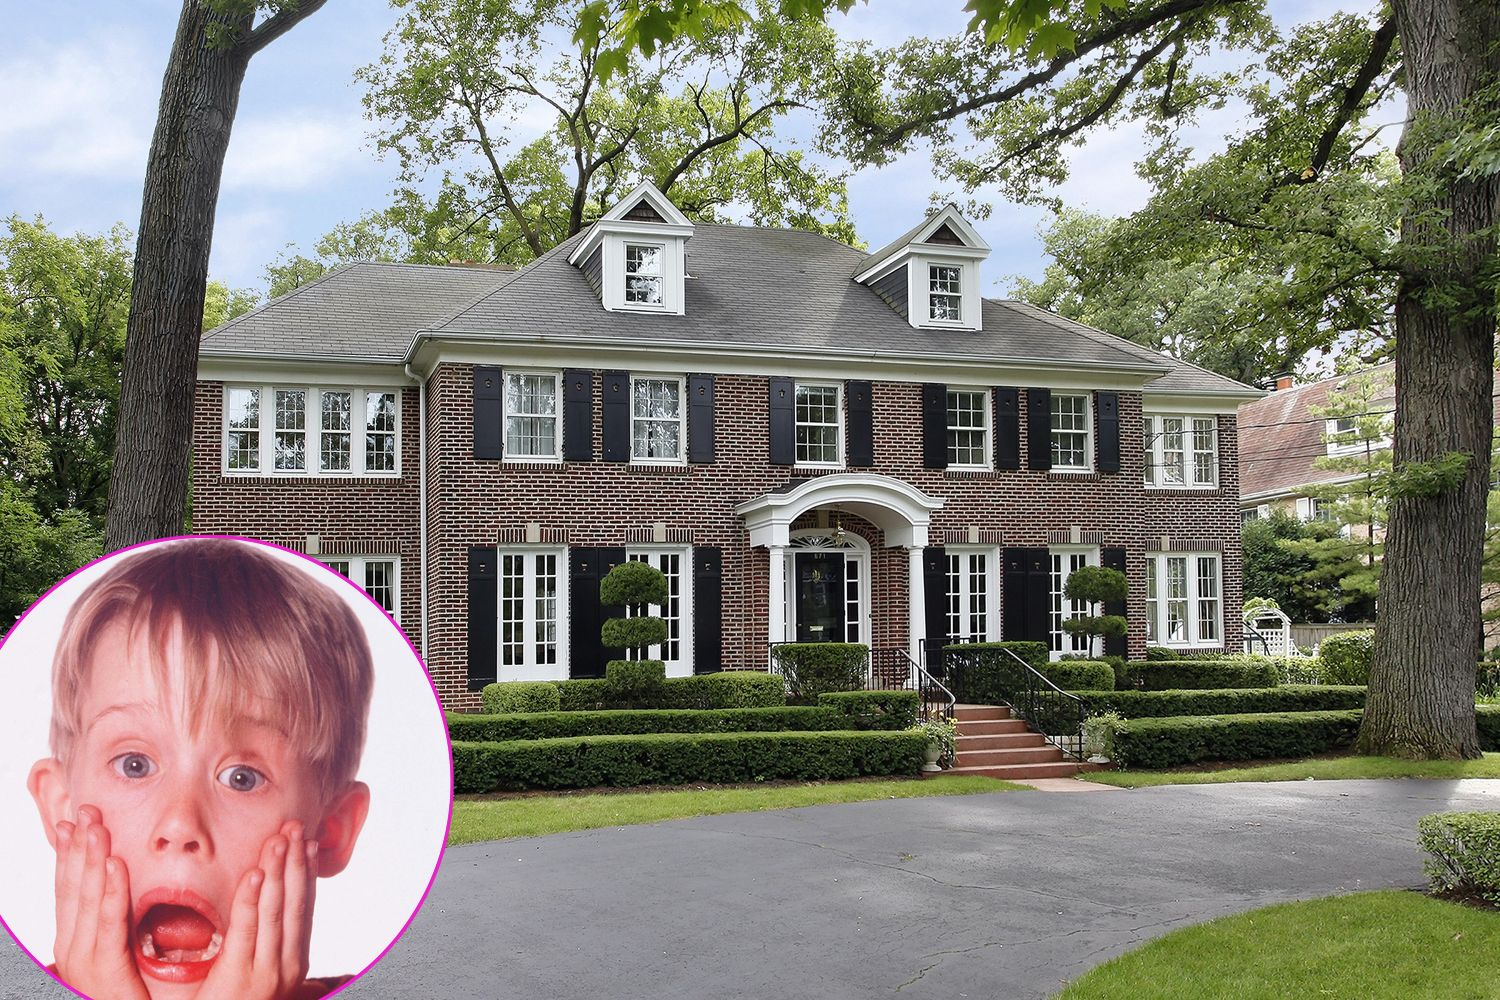 In 1990, John and Cynthia Abendshien opened up their house